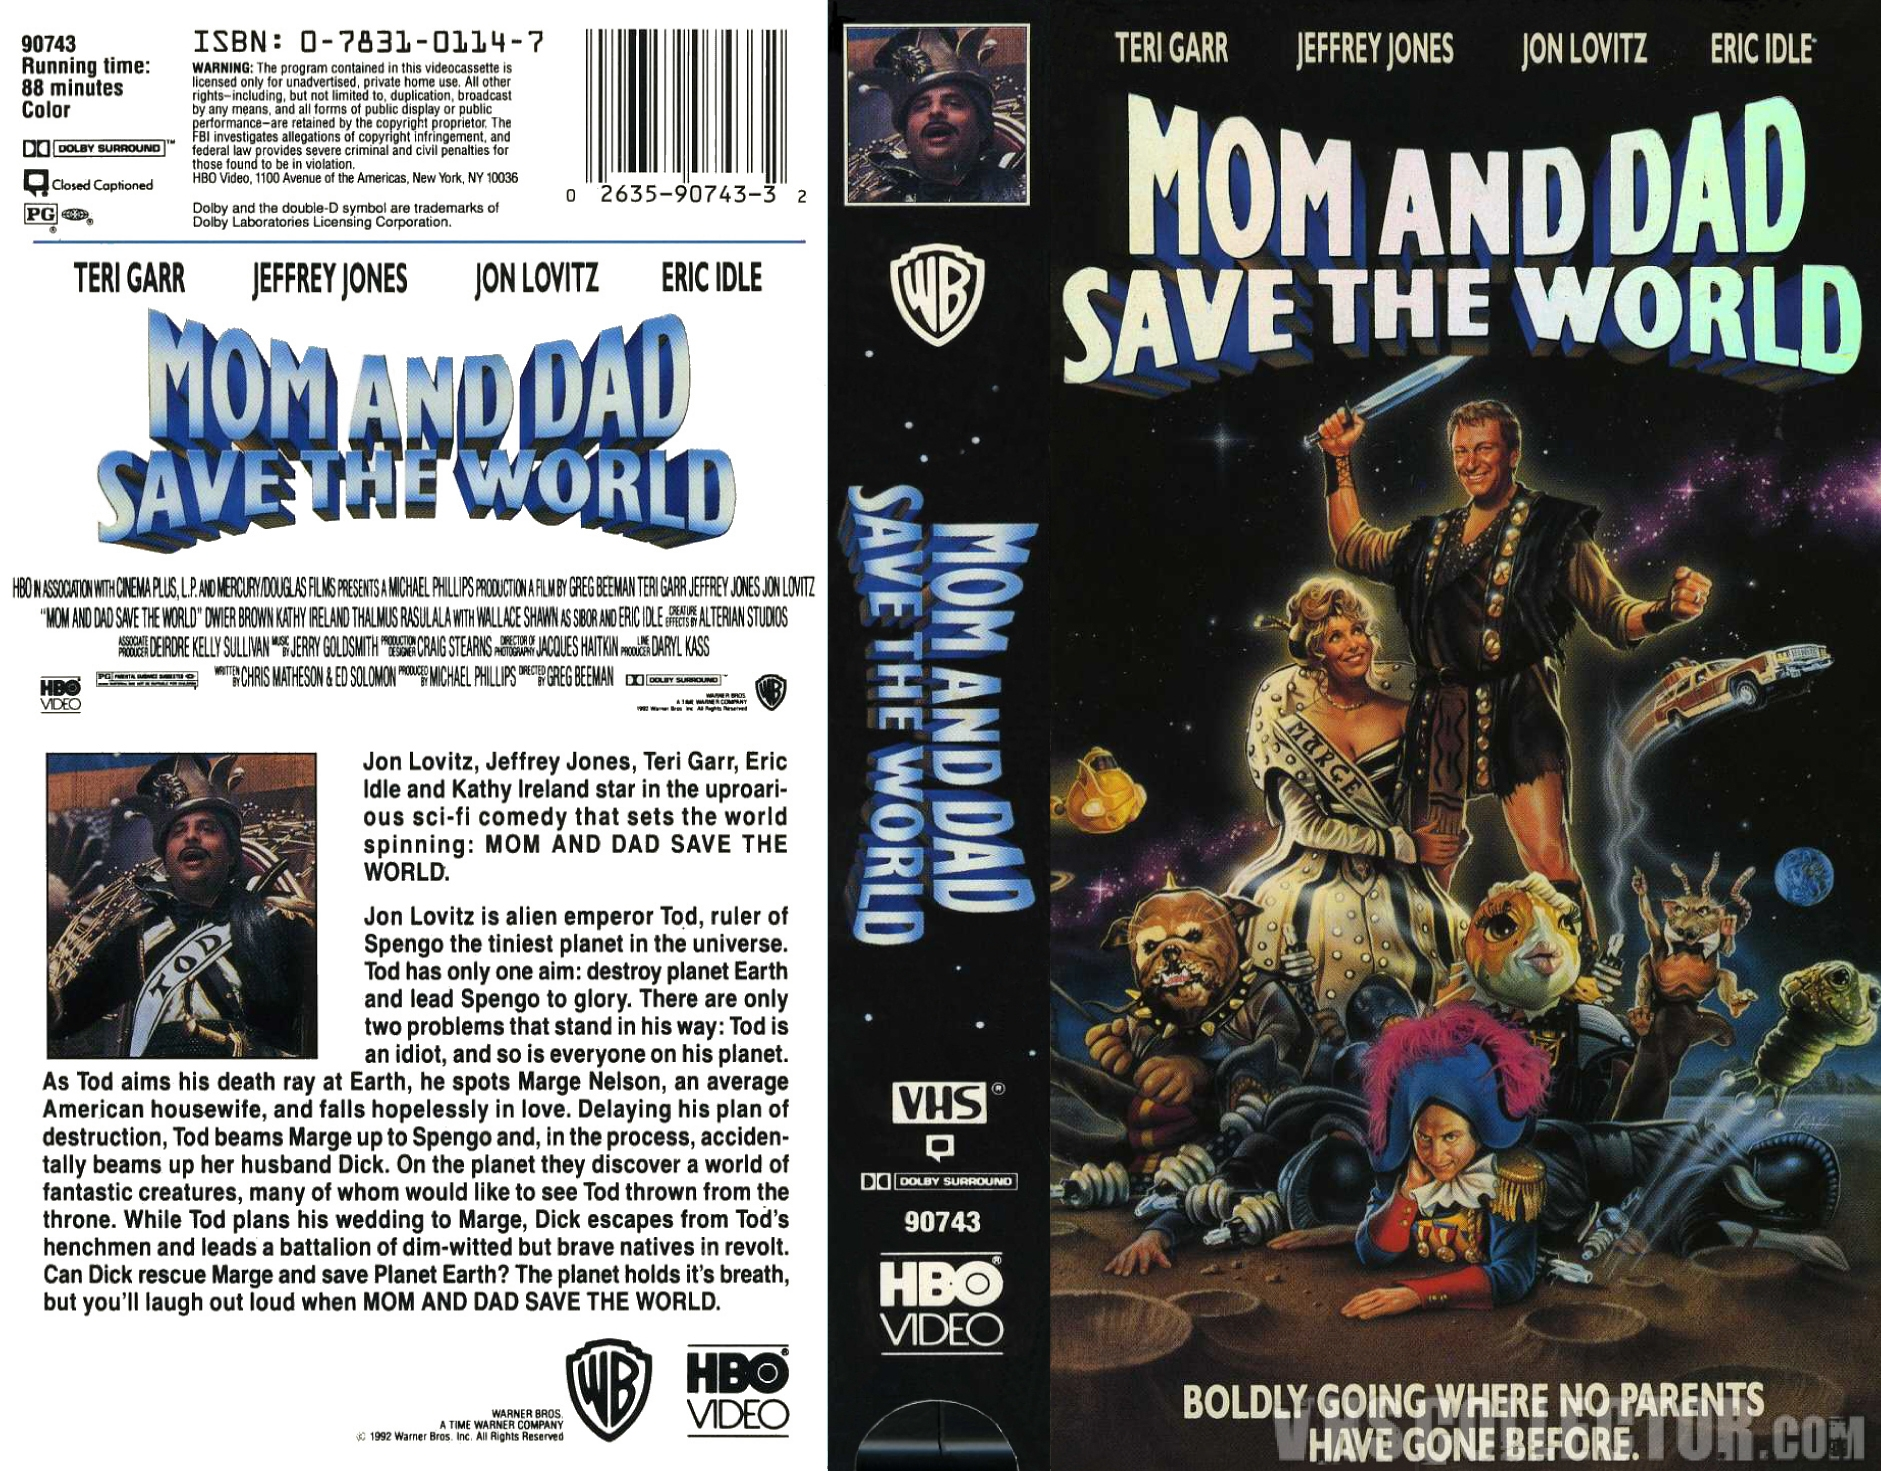 Mom and Dad Save the World VHS 1992 HBO Video Teri Garr ...